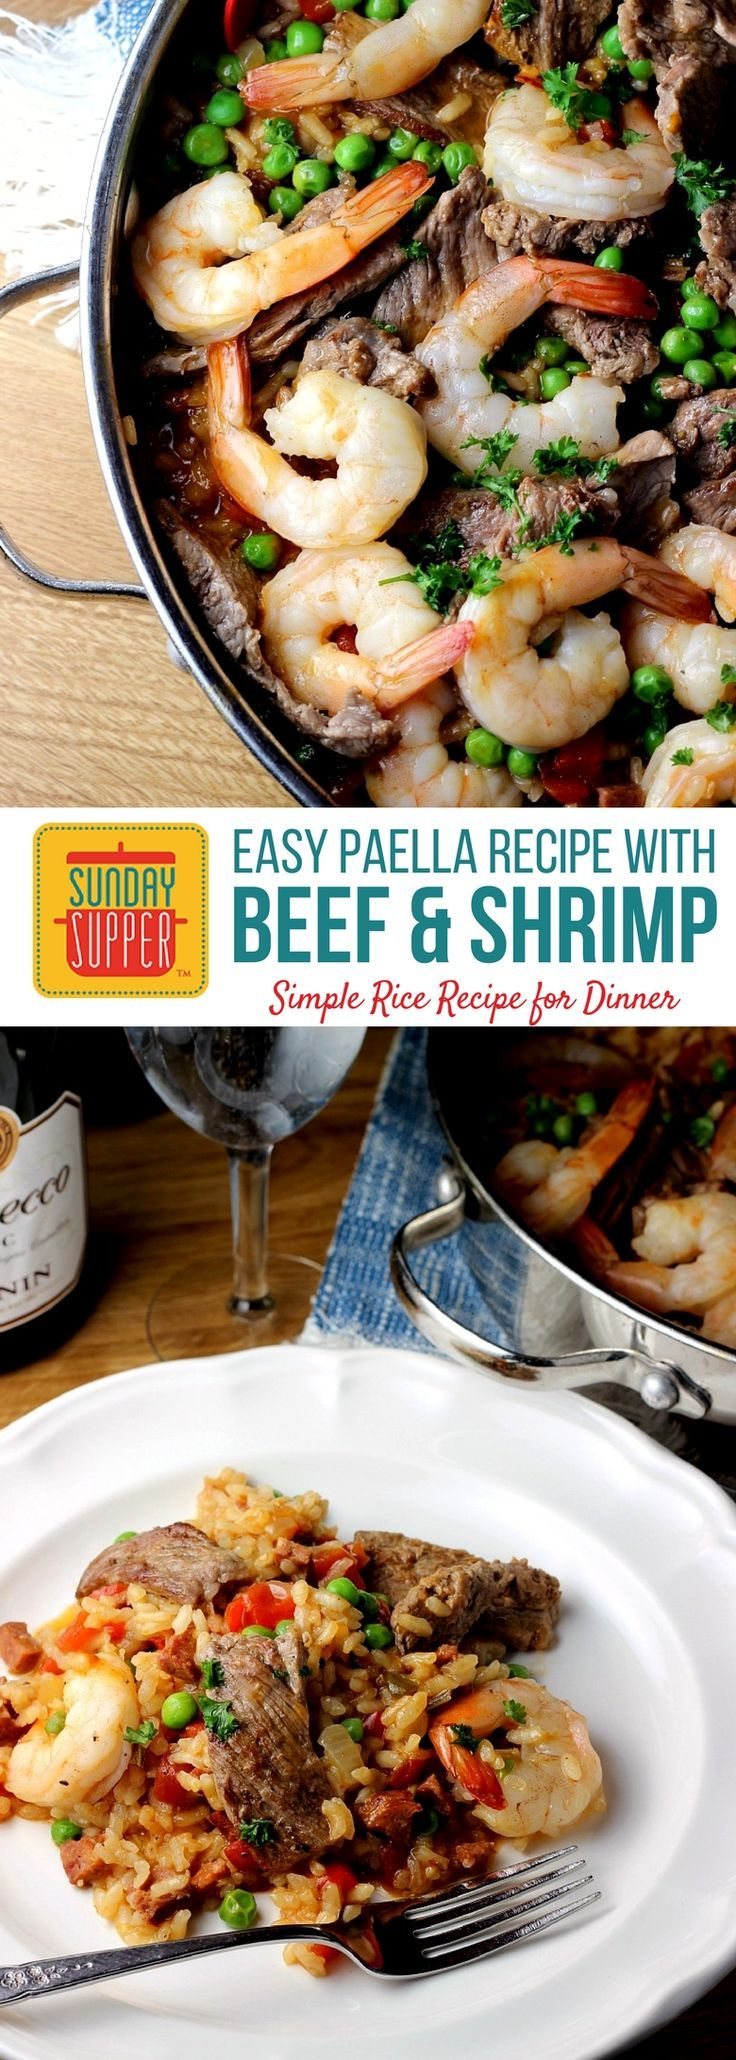 Easy Paella Recipe with Beef and Shrimp is a great simple rice recipe for dinner any day of the week! Full of tender sirloin steak, plump shrimp, vegetables and creamy rice it's a recipe perfect for a crowd! #SundaySupper #beef #shrimp #easyrecipe